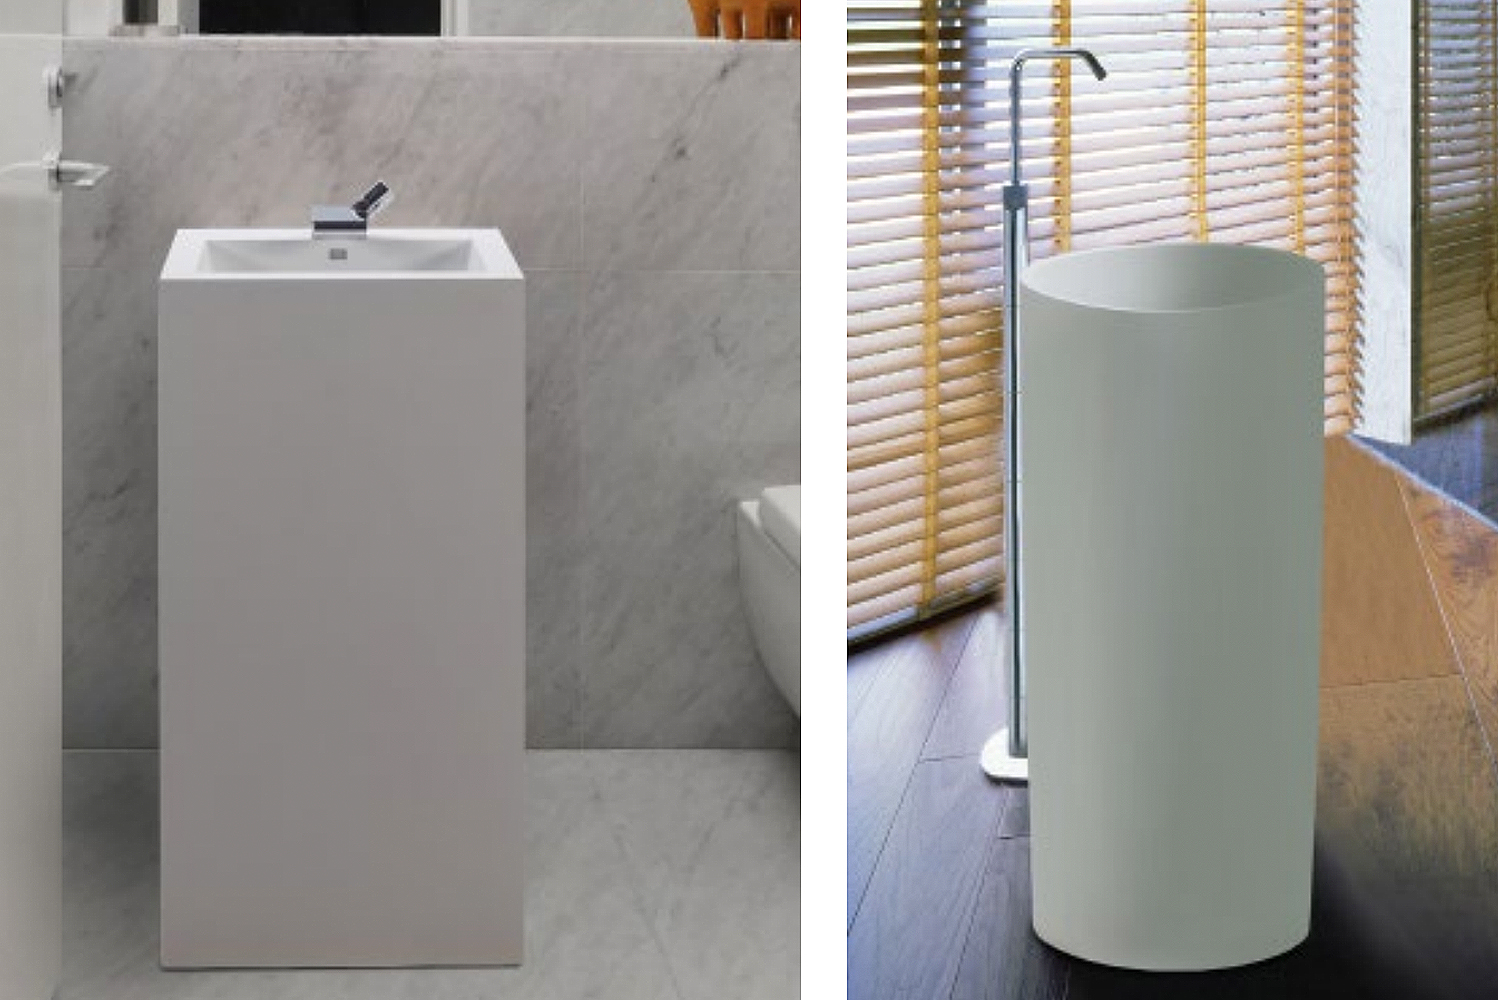 Petra and Halo pedestal sinks from MTI Baths